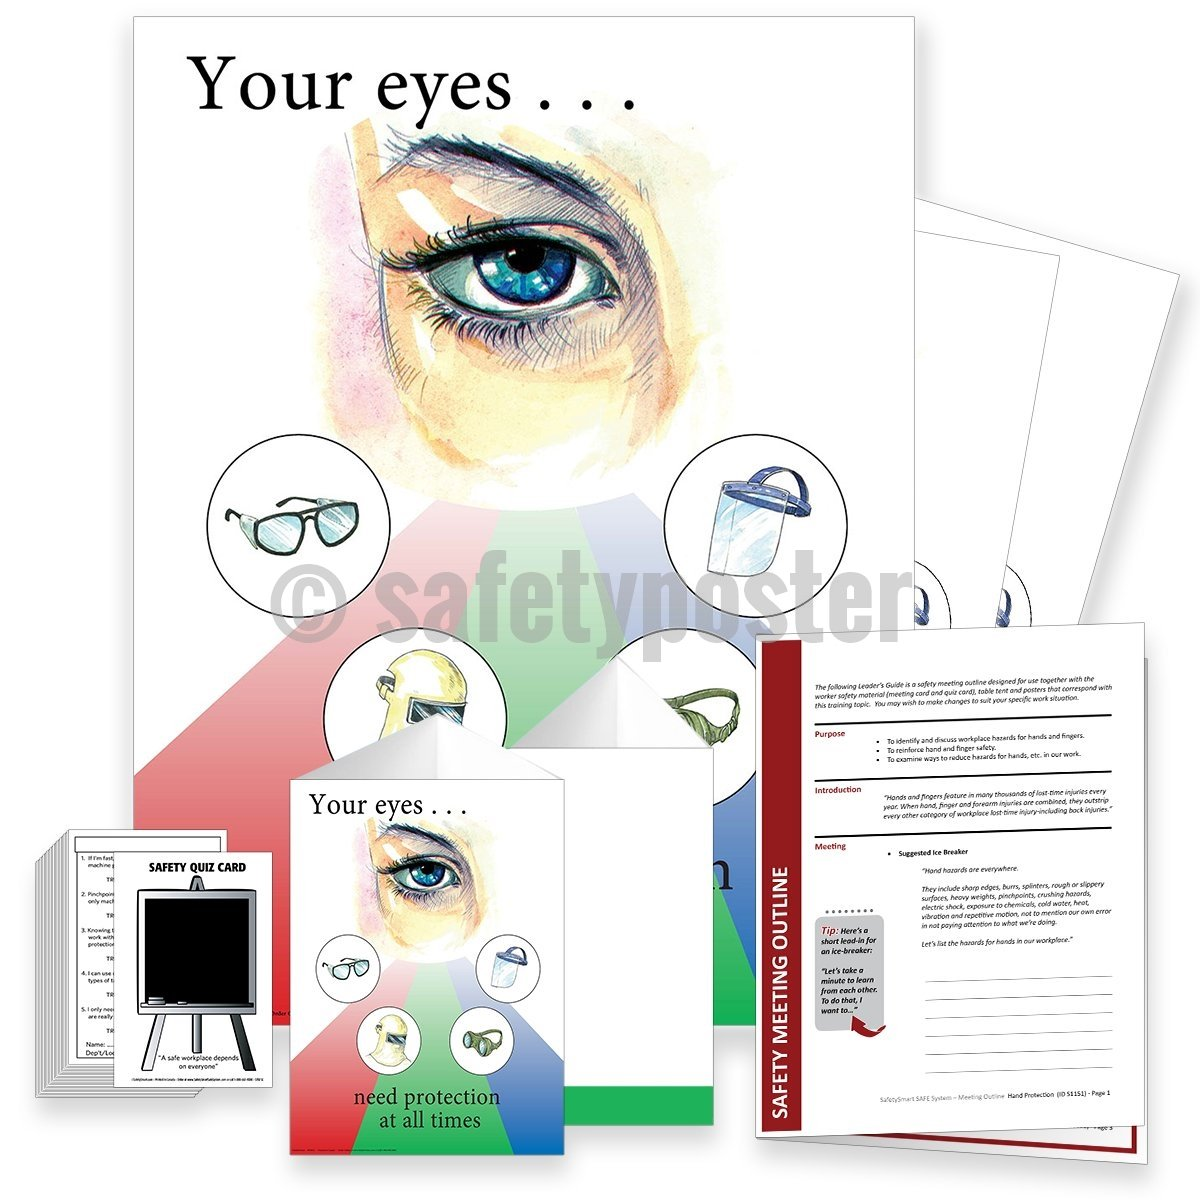 Safety Meeting Kit - Your Eyes Need Protection At All Times